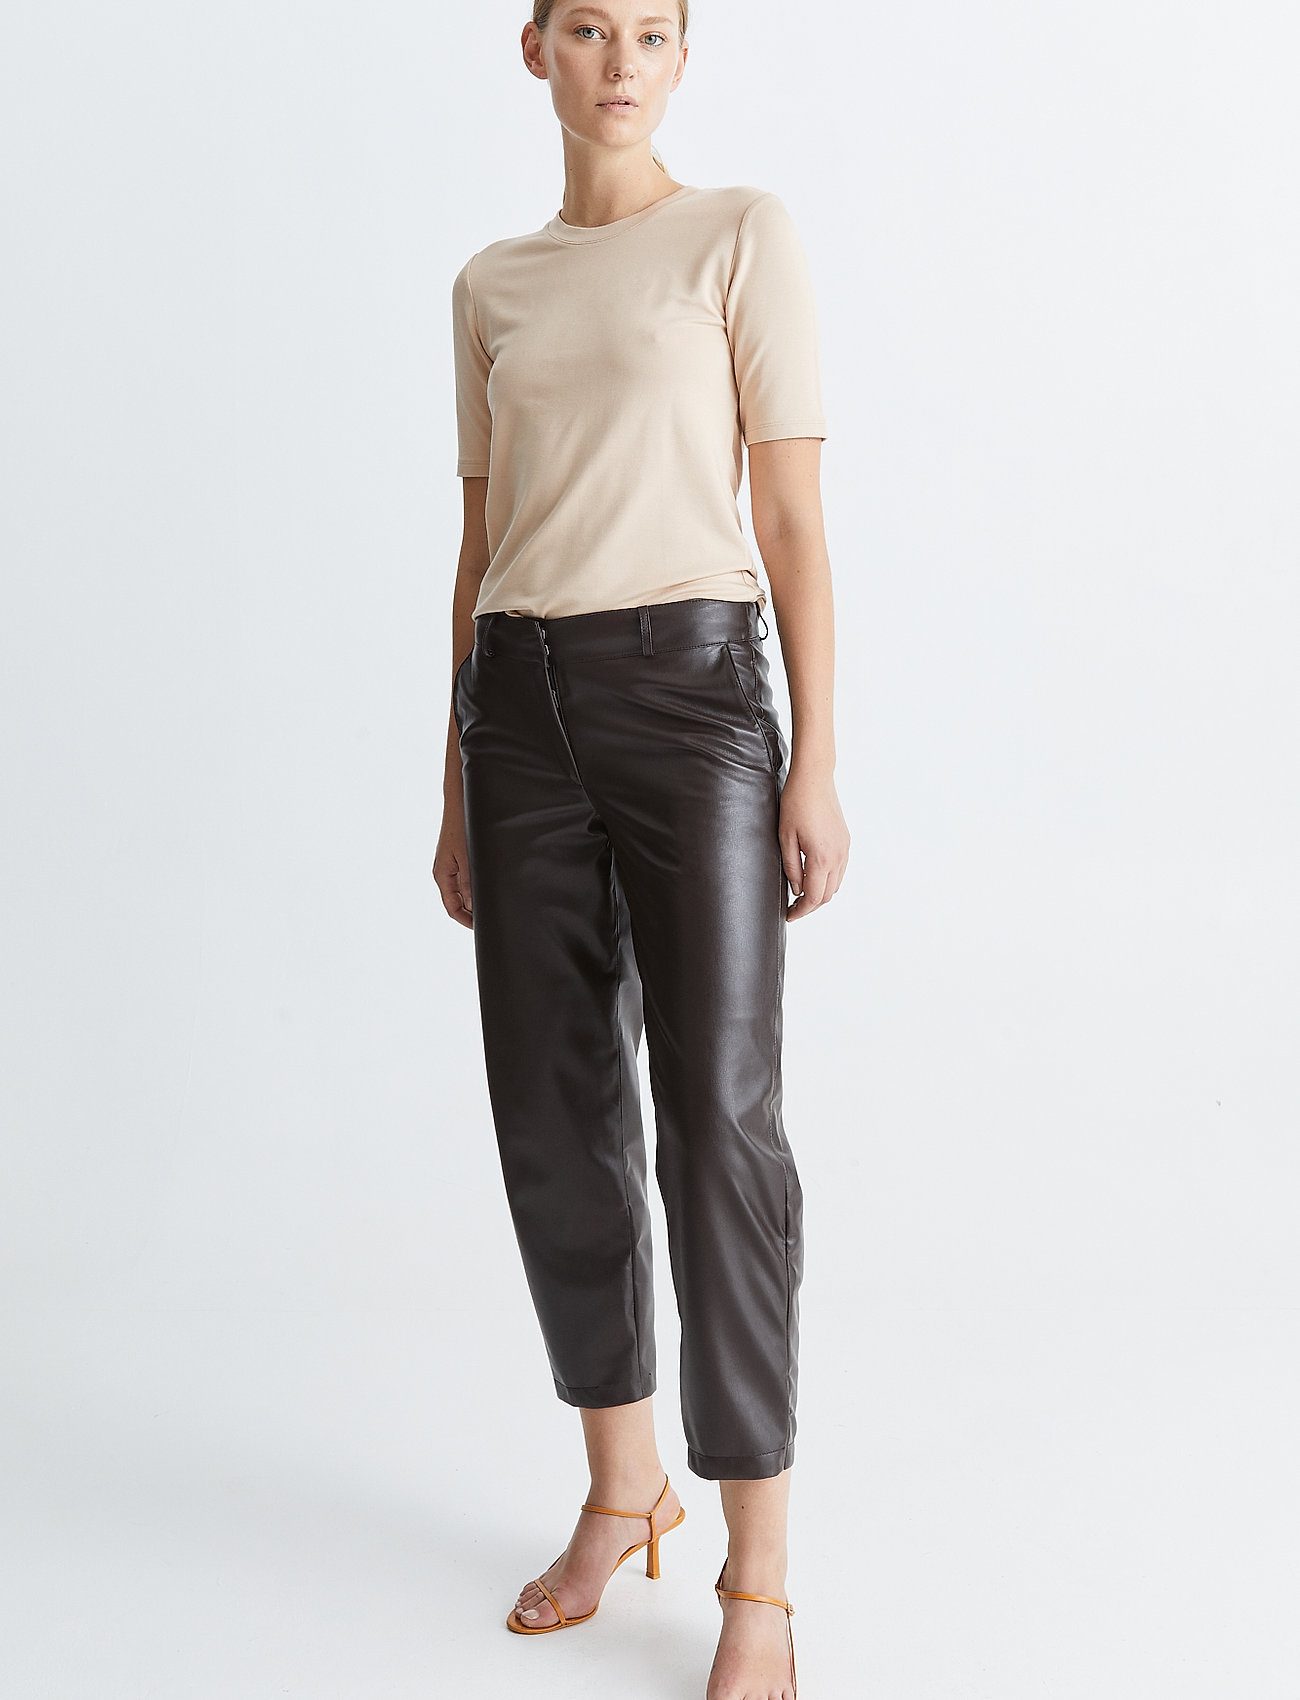 Stylein Verde Trousers (Brown), 941.85